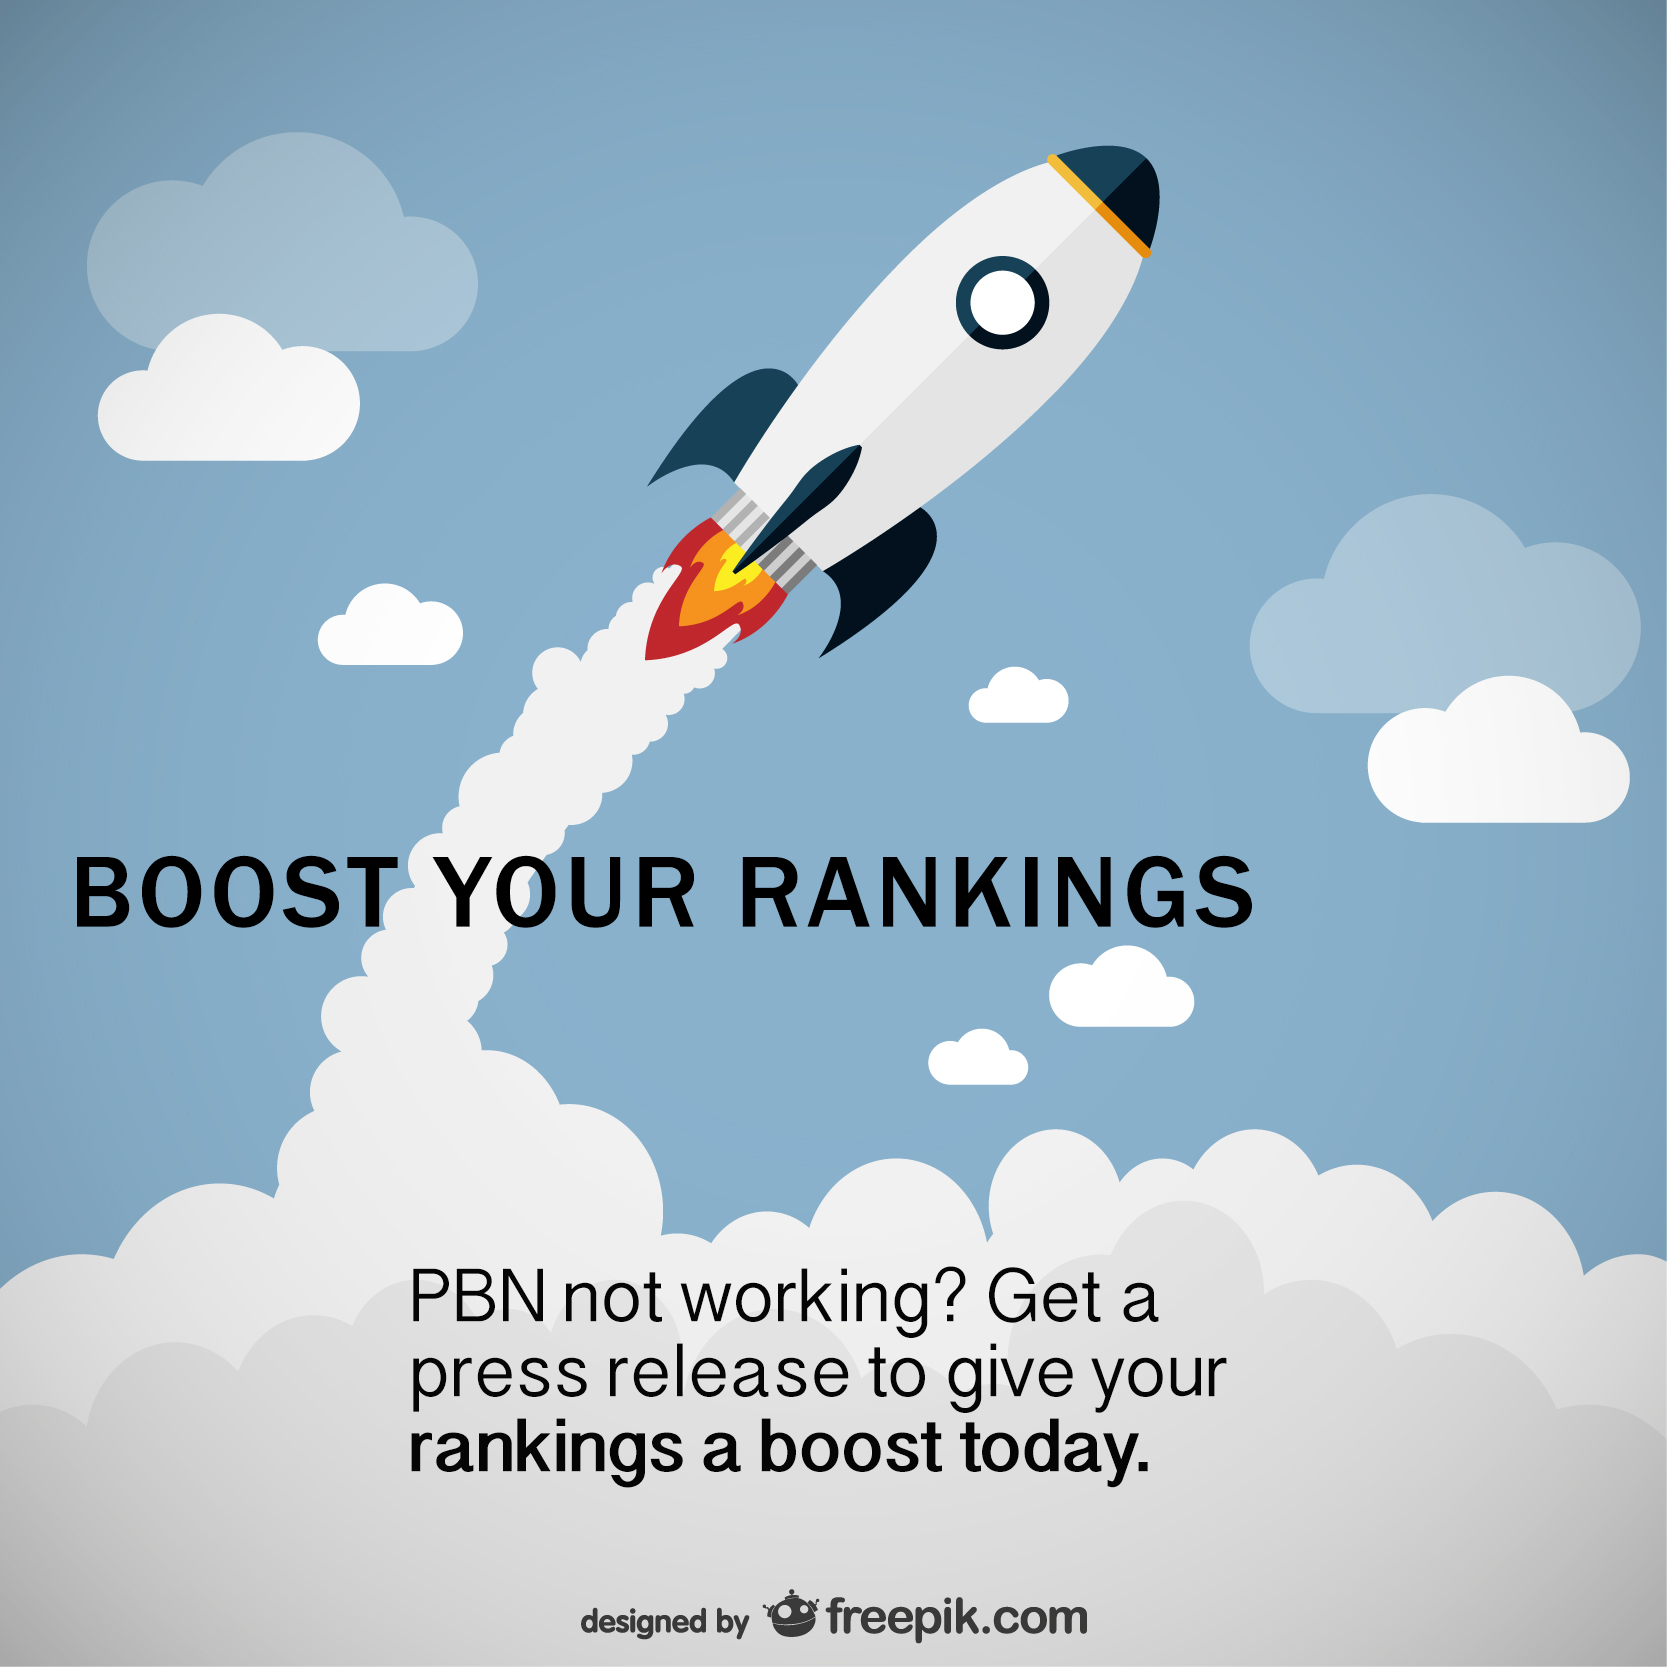 PBN NOT WORKING? Boost Your Rankings NOW! GET A Press Release!